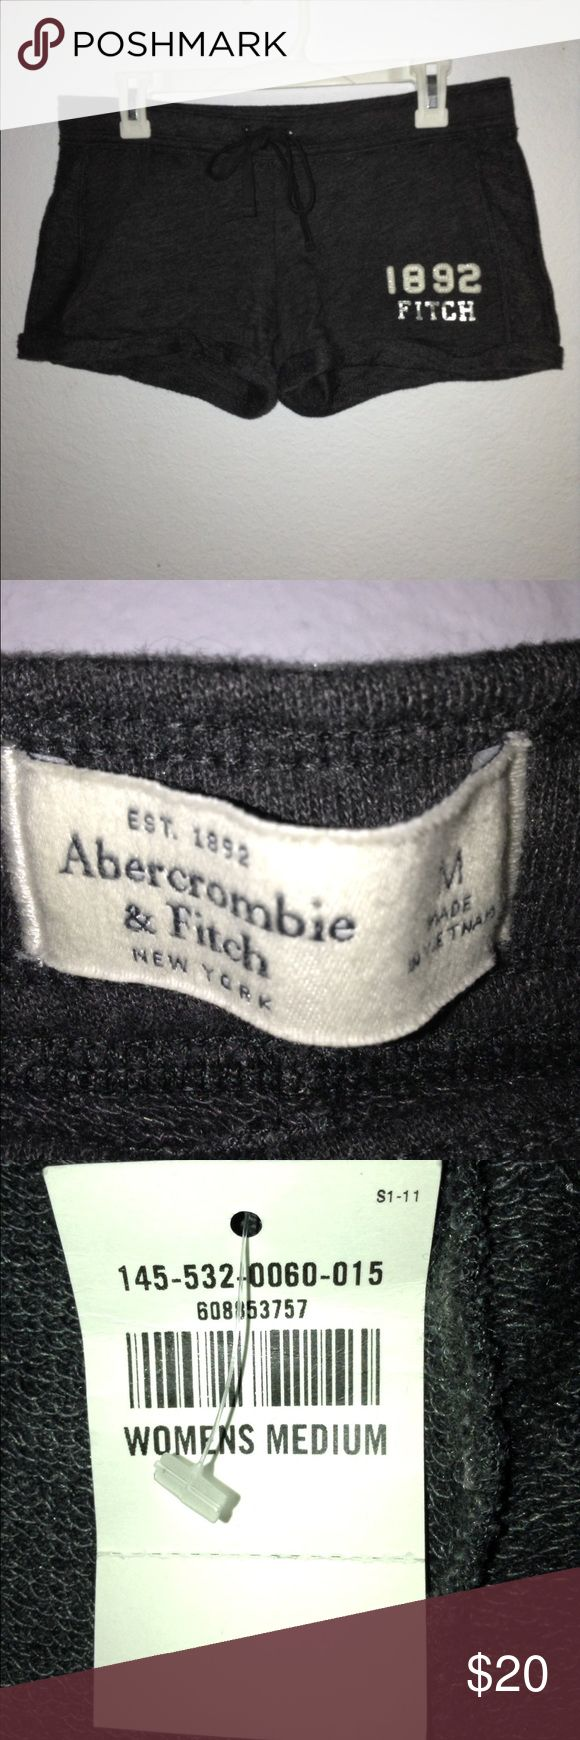 NWT Abercrombie and Fitch shorts New with tags shorts from Abercrombie and Fitch. Abercrombie & Fitch Shorts